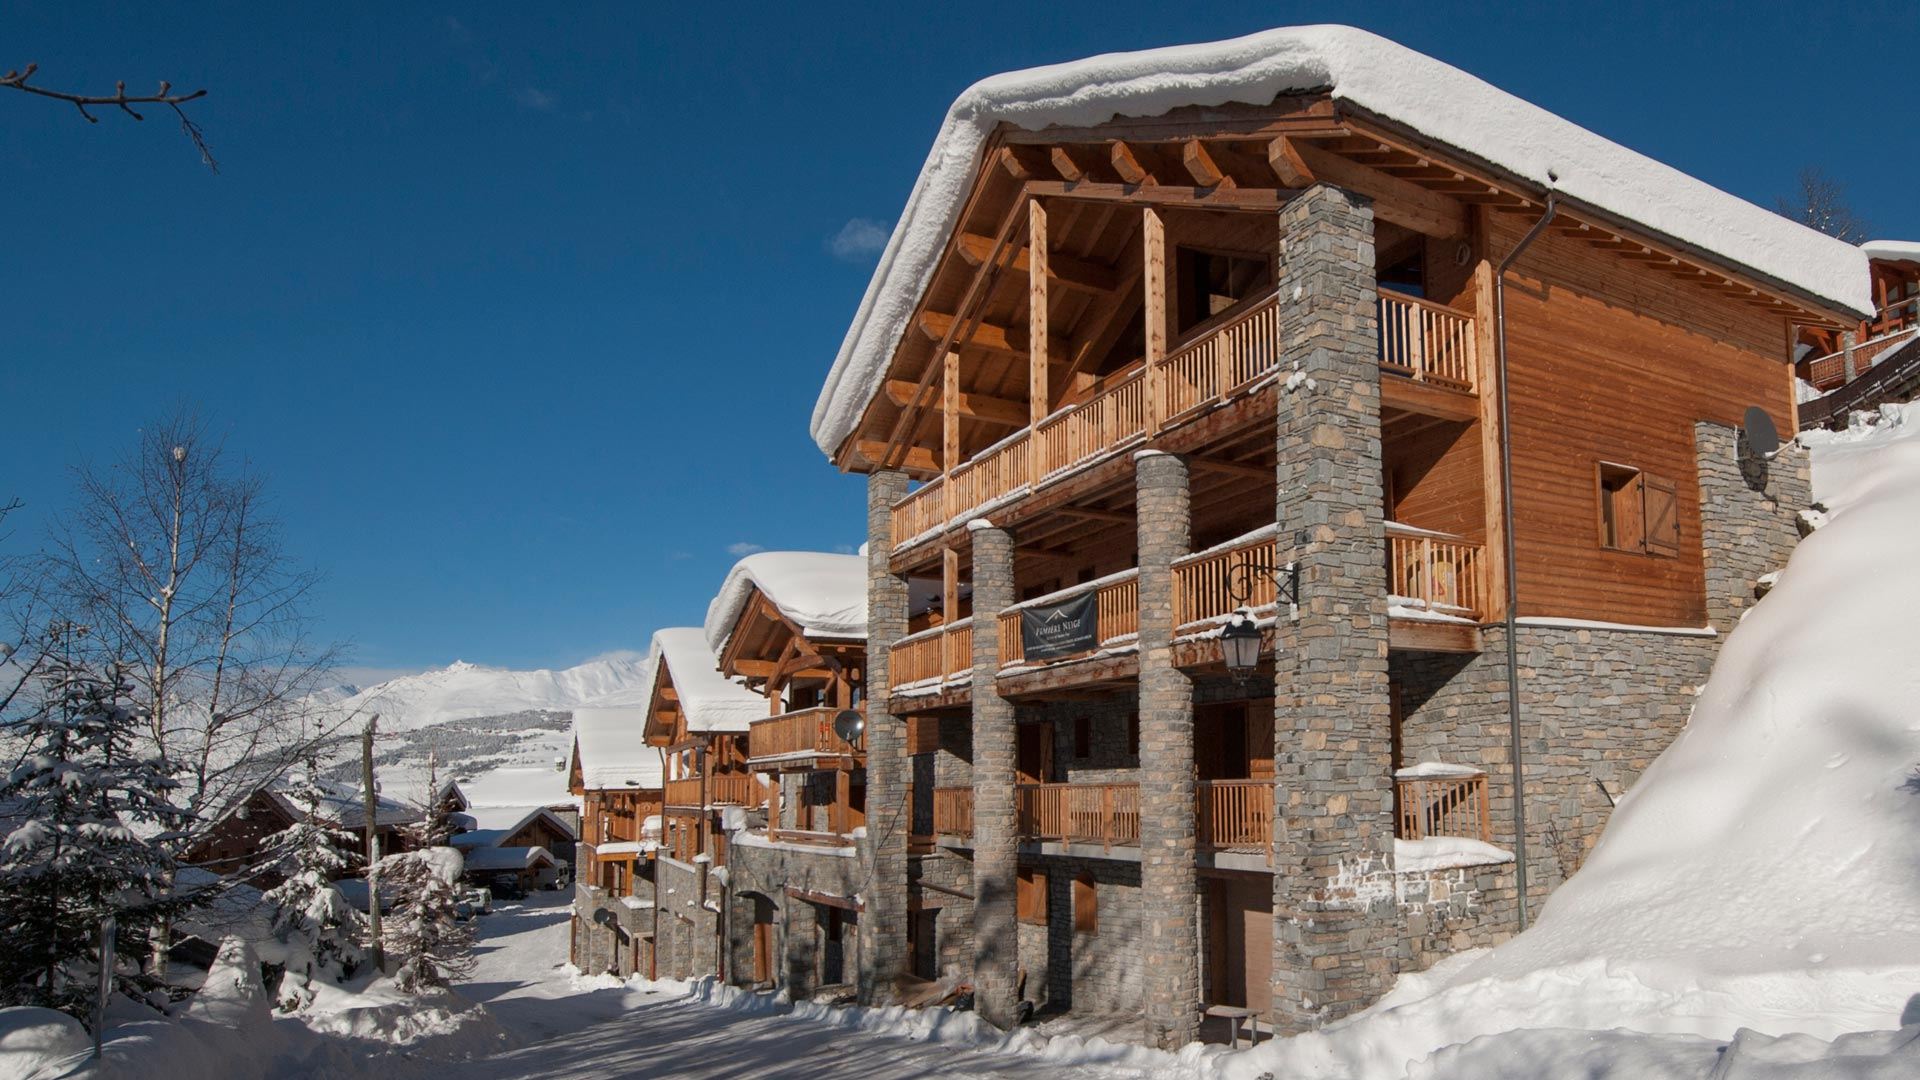 La Marquise Chalet in Ste Foy